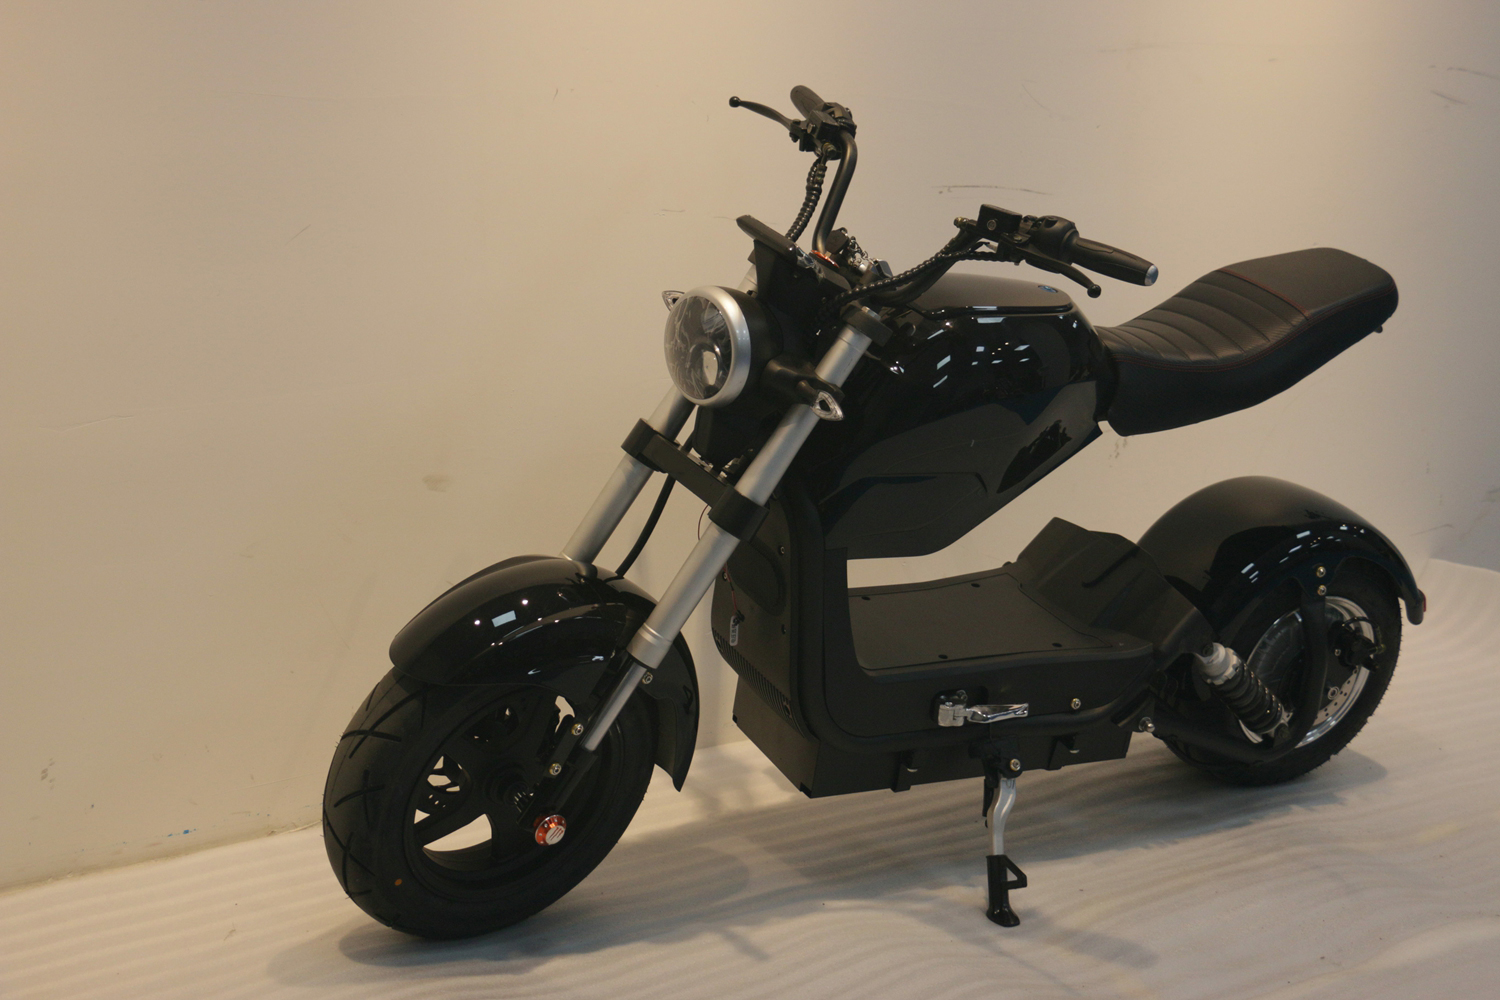 ONAN City Scooter 1500w Long Range Electric Scooter Electric Motorcycle 2000W